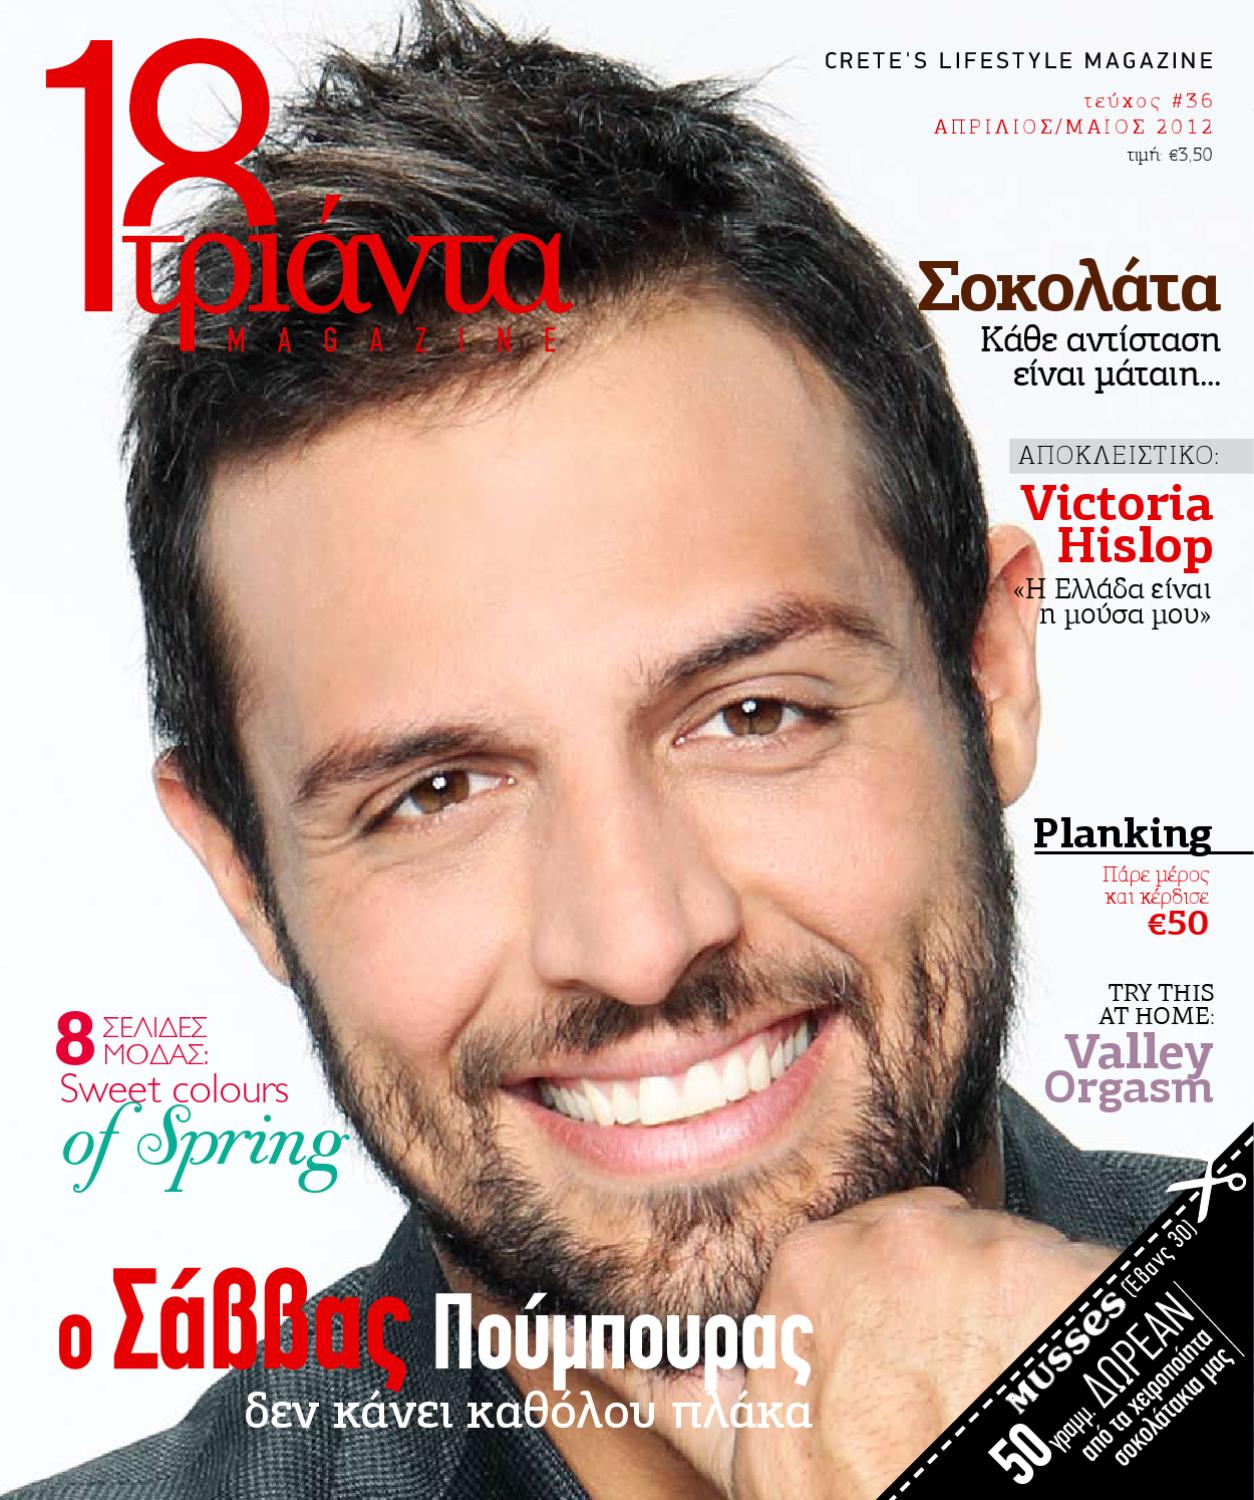 18trianta Magazine issue 36 by Uncover 18trianta - issuu f6ce8f08c90